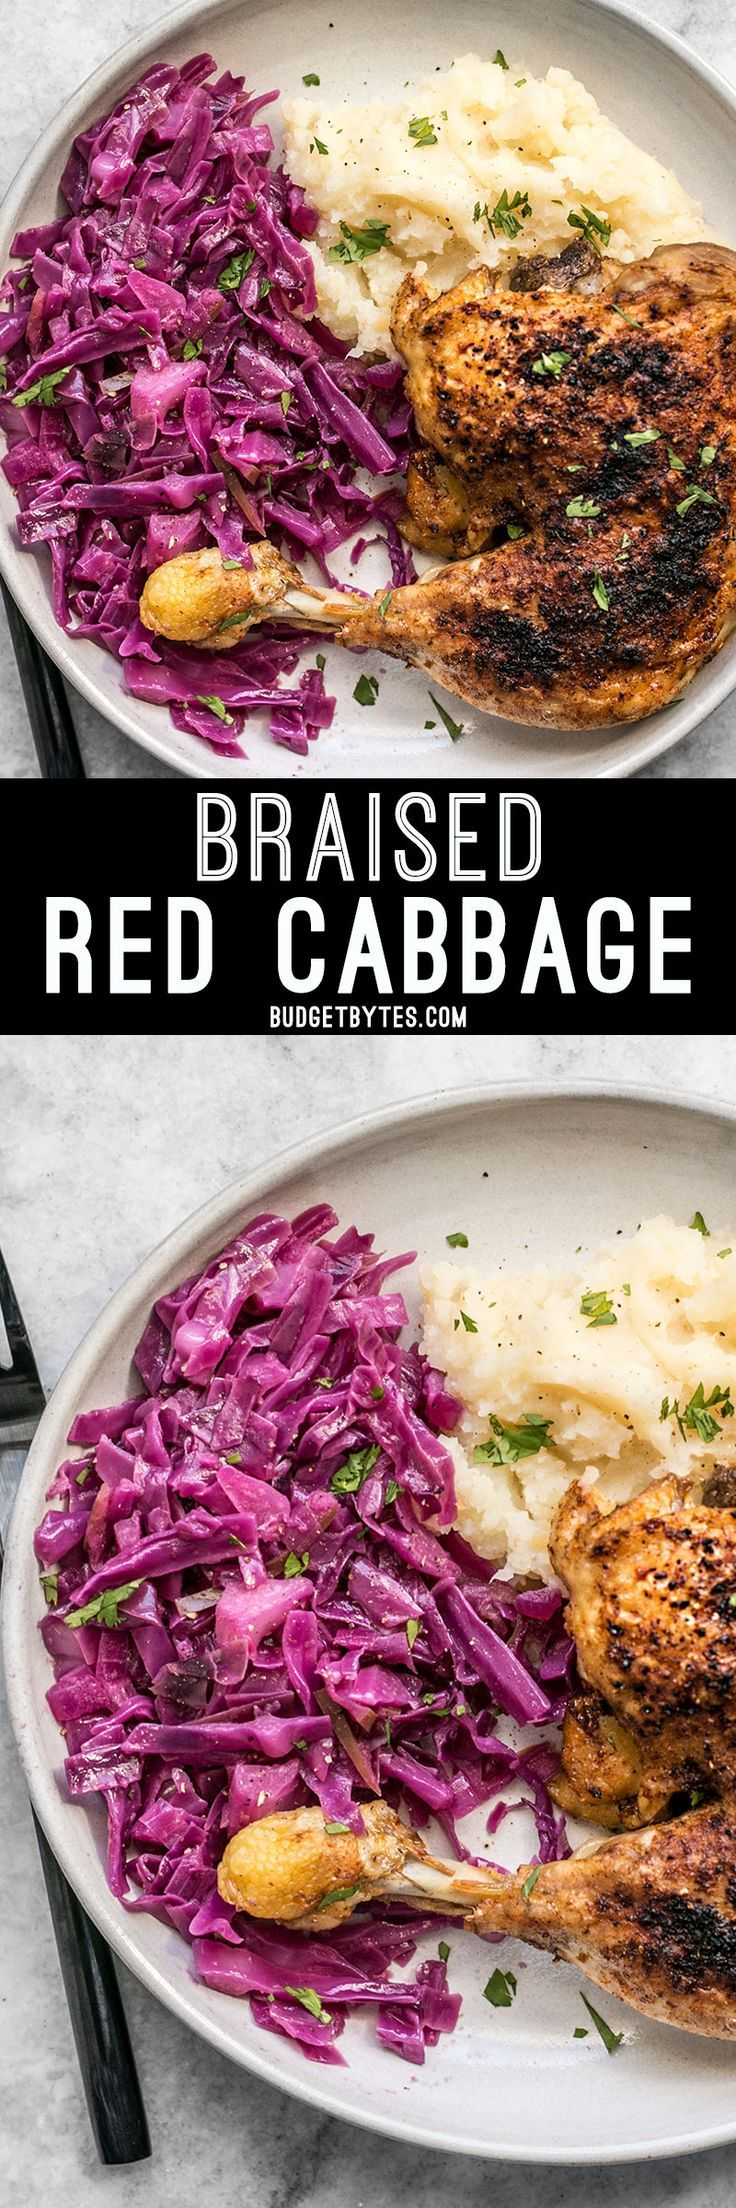 Braised Red Cabbage is an easy, cost efficient, and healthful side for your comforting winter meals.